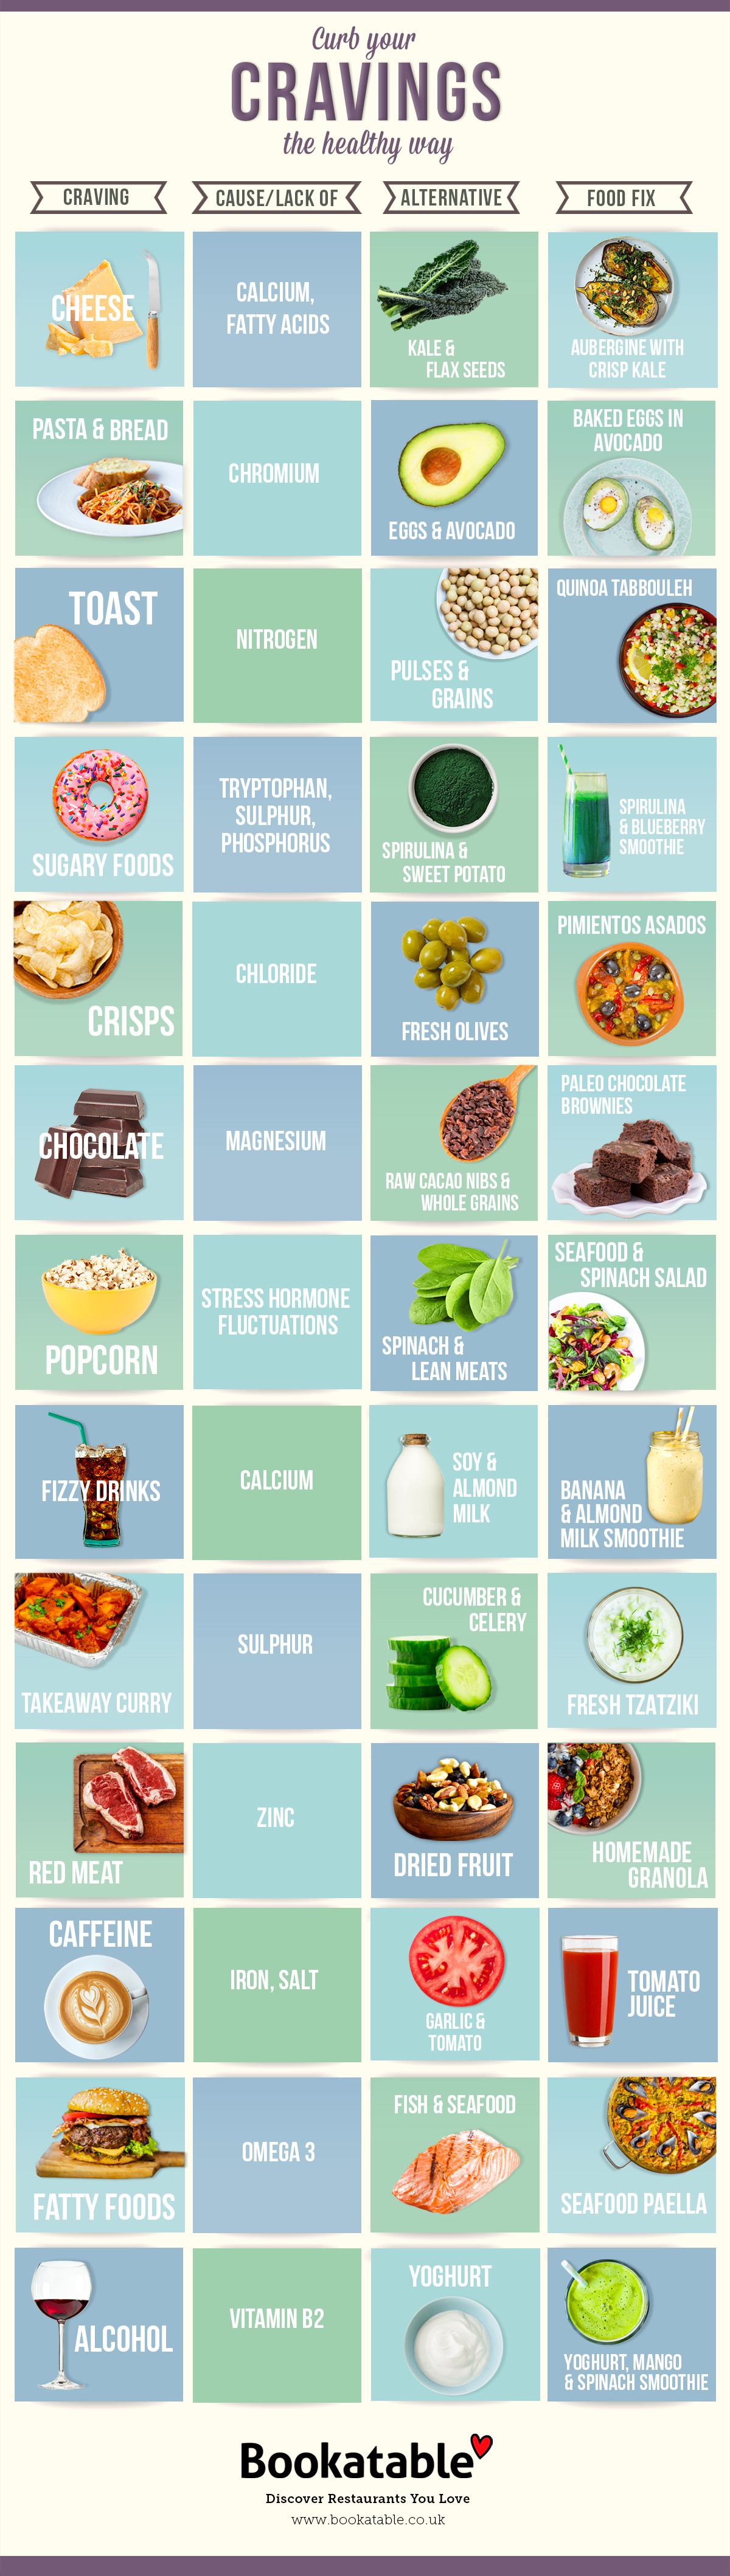 Curb Any Of Your Unhealthy Cravings The Healthy Way Infographic